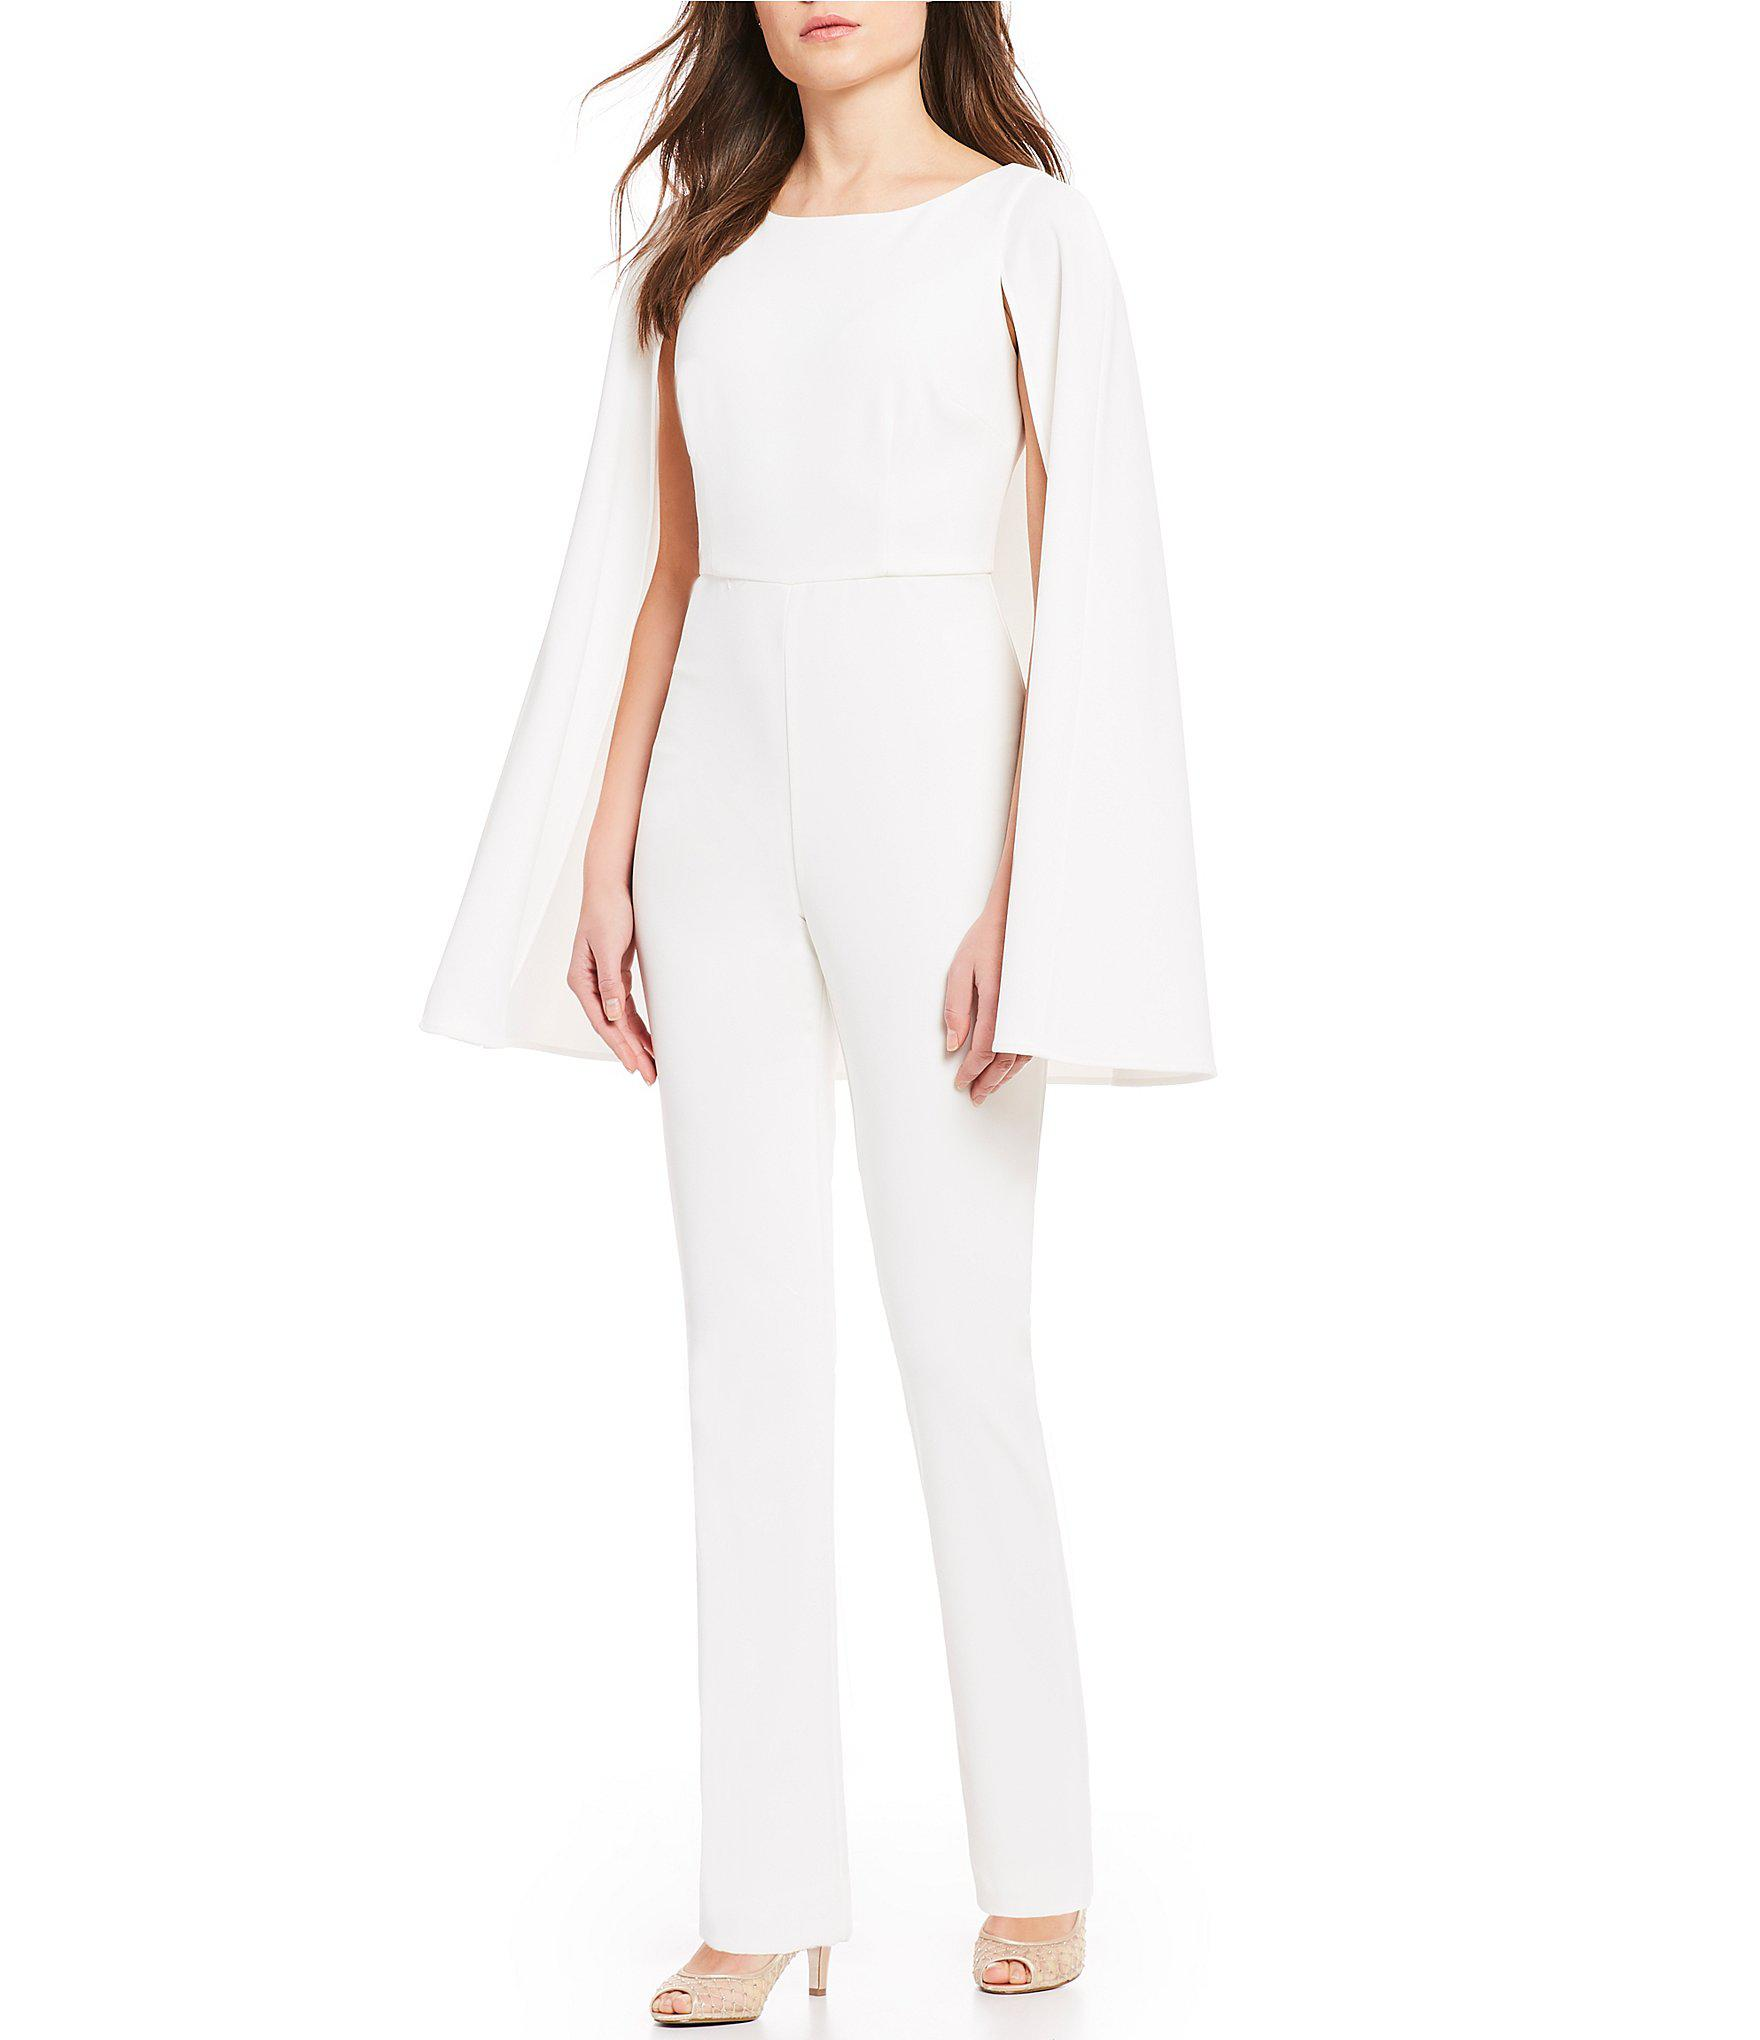 3bf1e0ba5f8 Lyst - Adrianna Papell Crepe Cape Jumpsuit in White